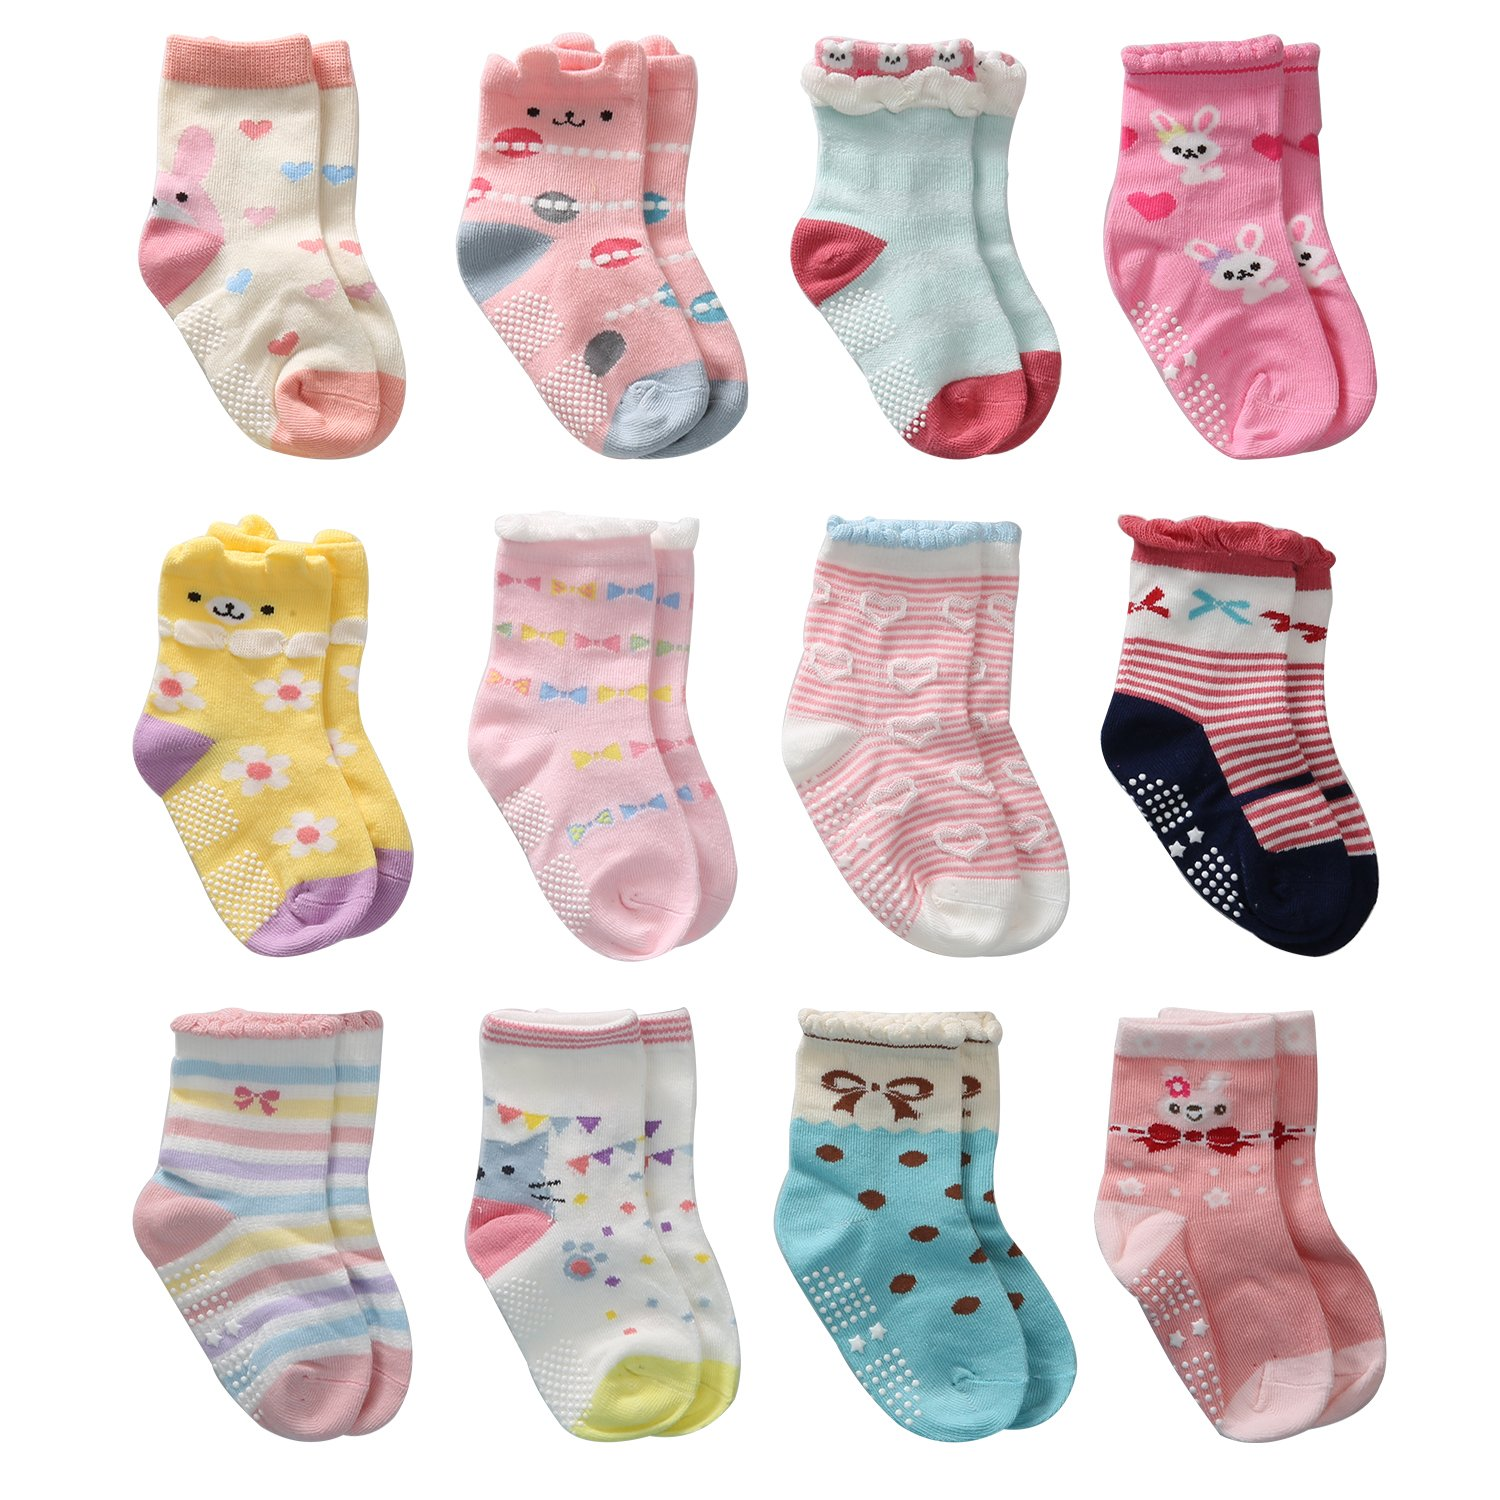 12 Pairs Toddler Girl Non Skid Socks Cute Cotton with Grips, Baby Girls Anti-skid Socks Random Designs